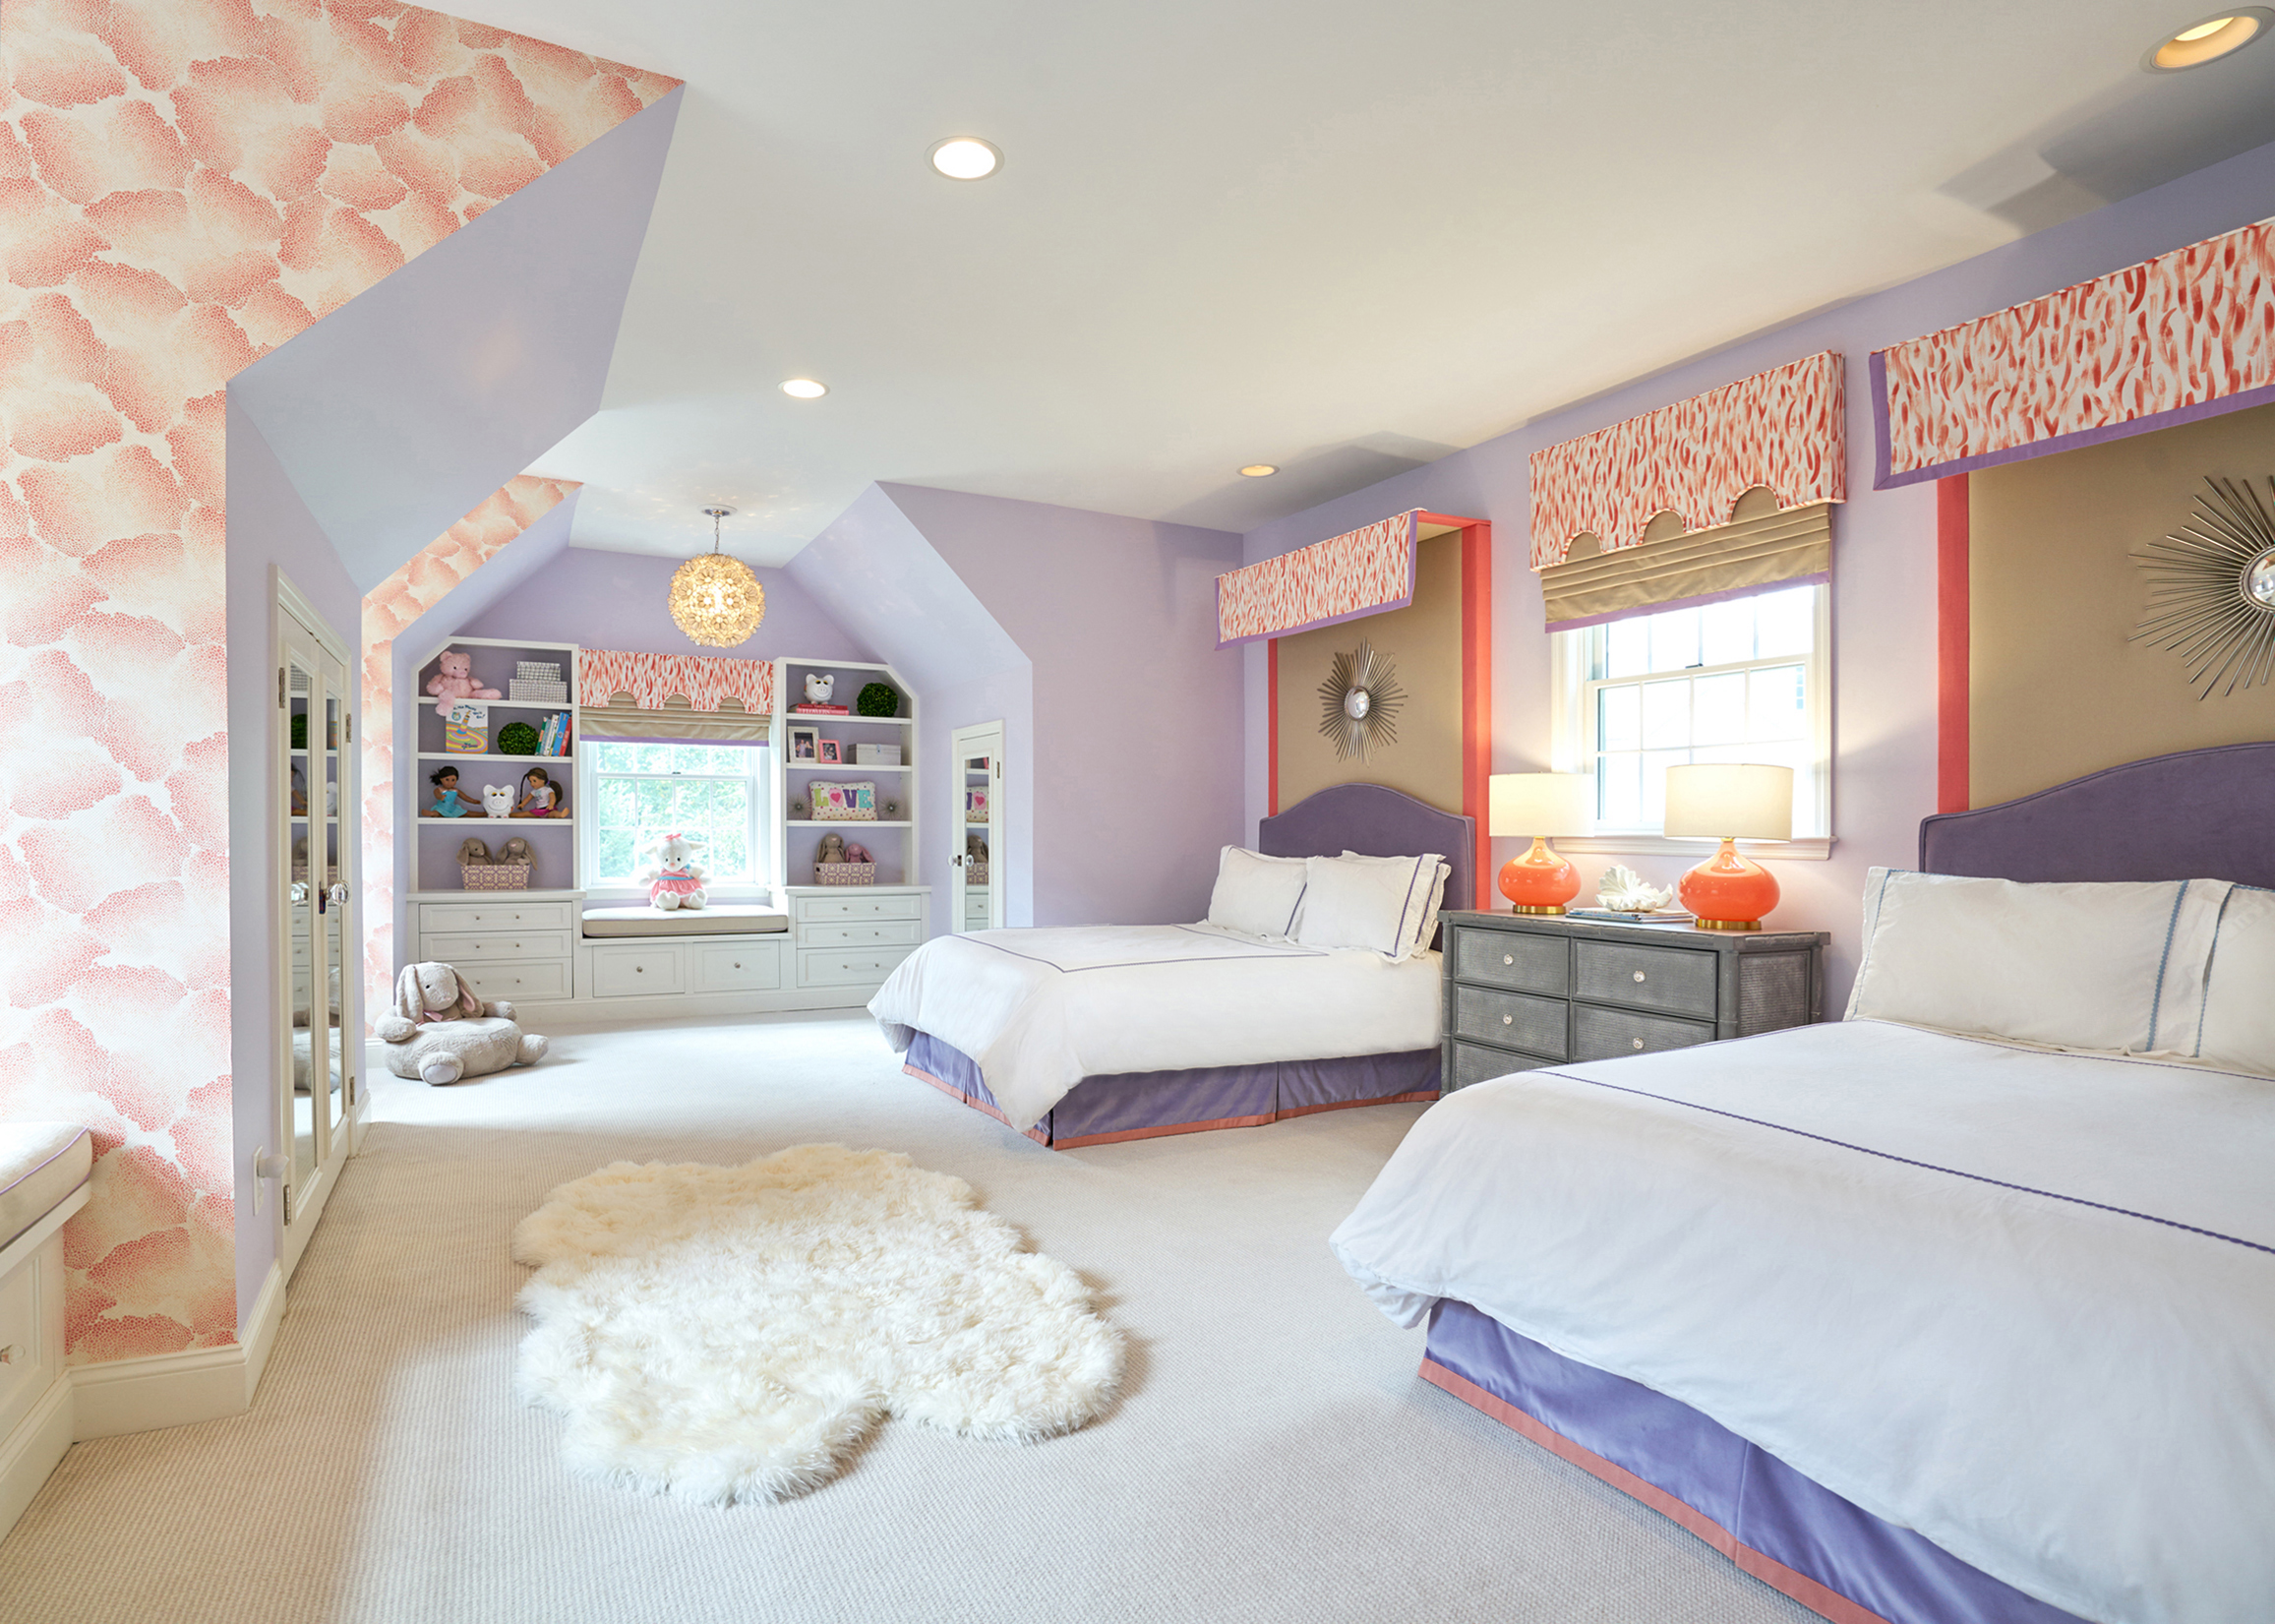 Wallpaper highlights the architecture of this youthful bedroom.